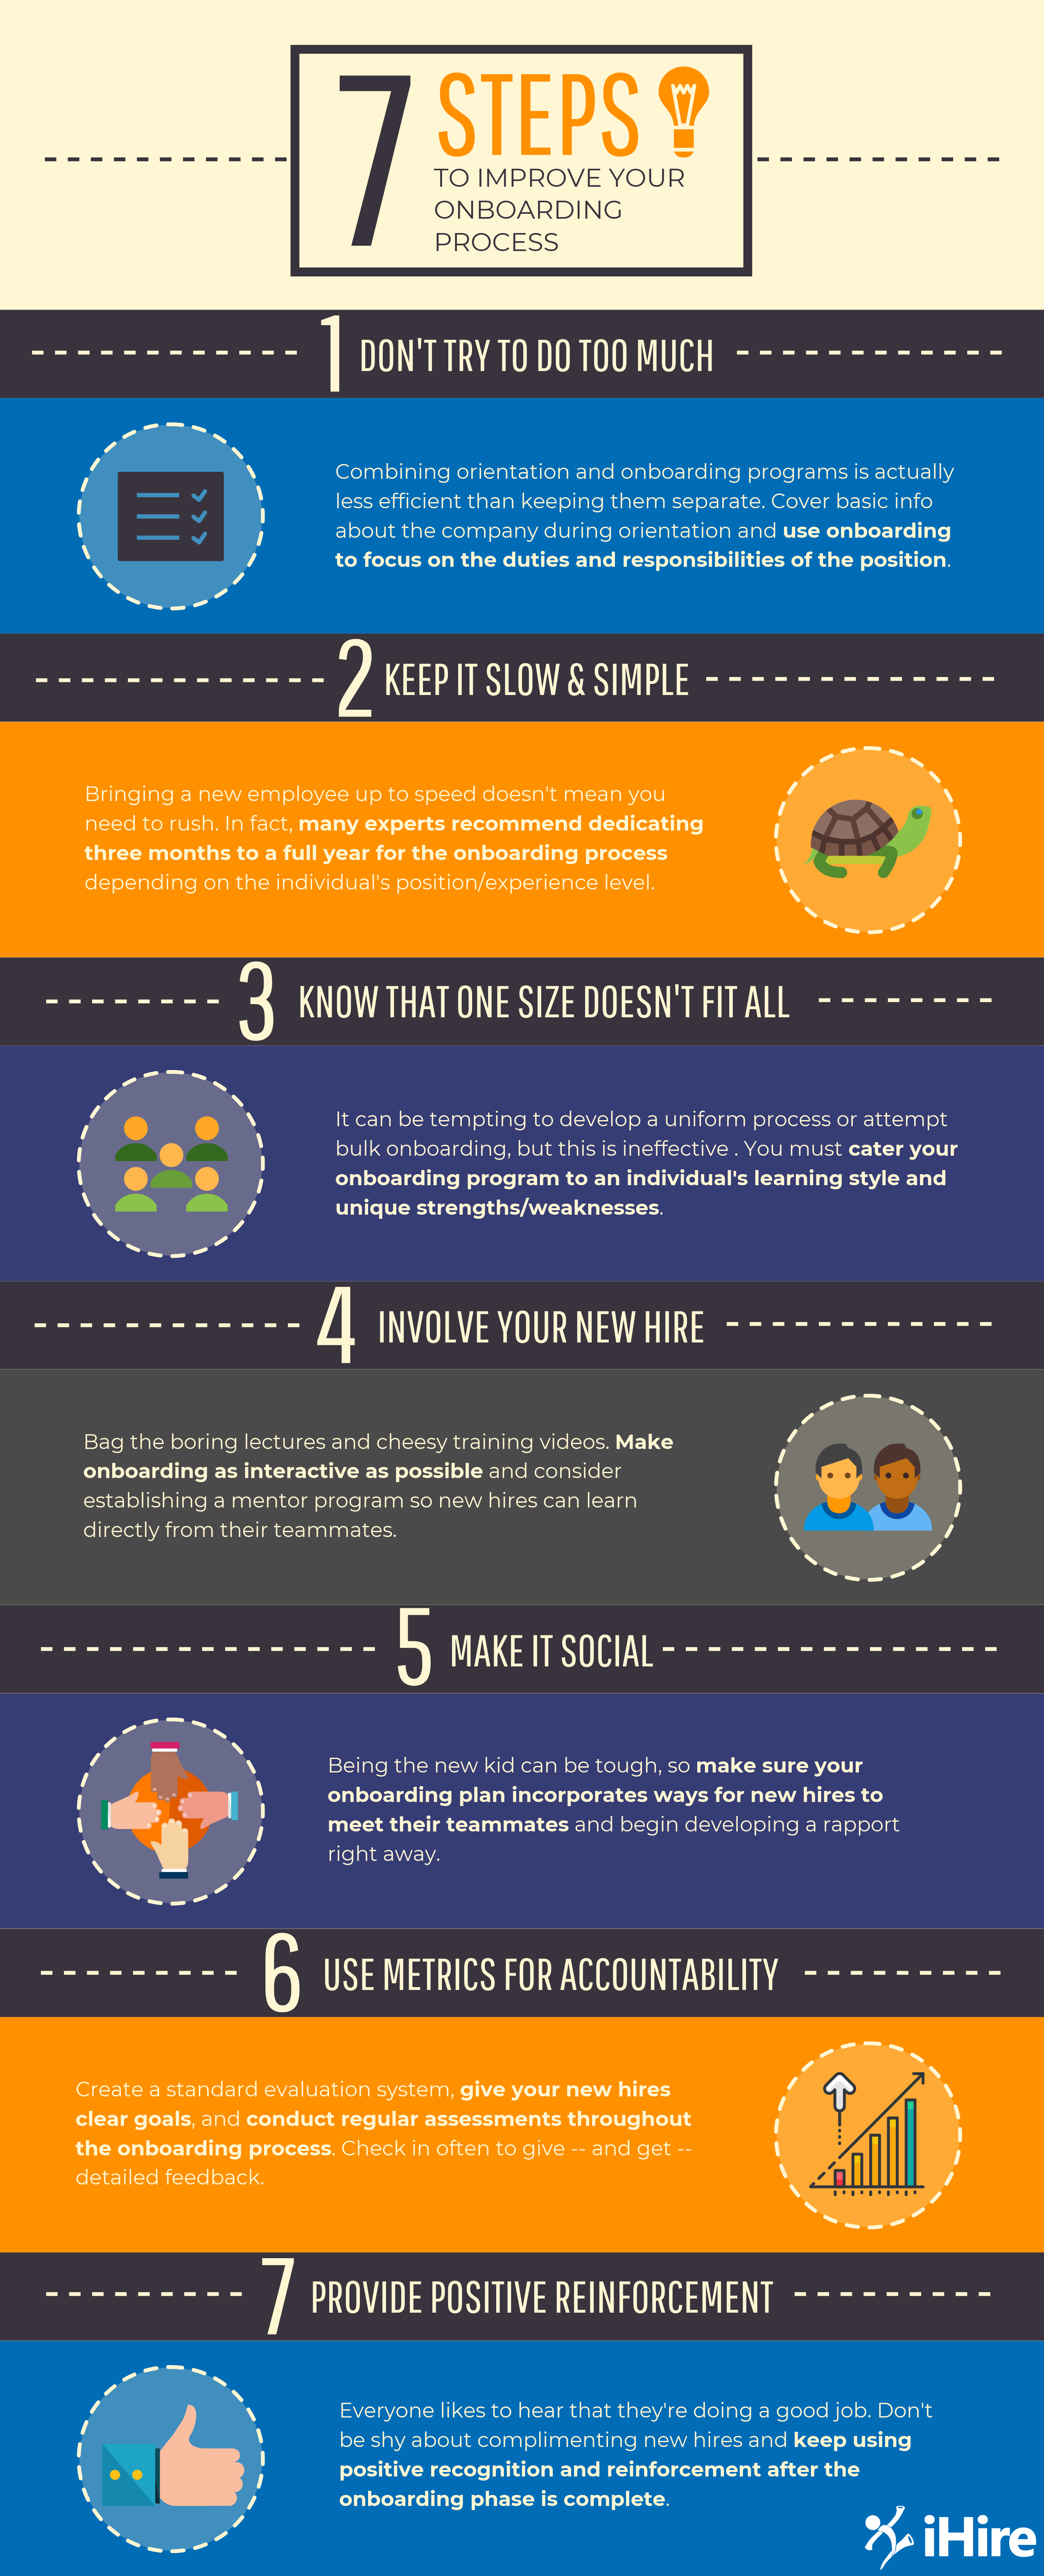 Advice on how to improve your onboarding process in seven steps. Infographic.